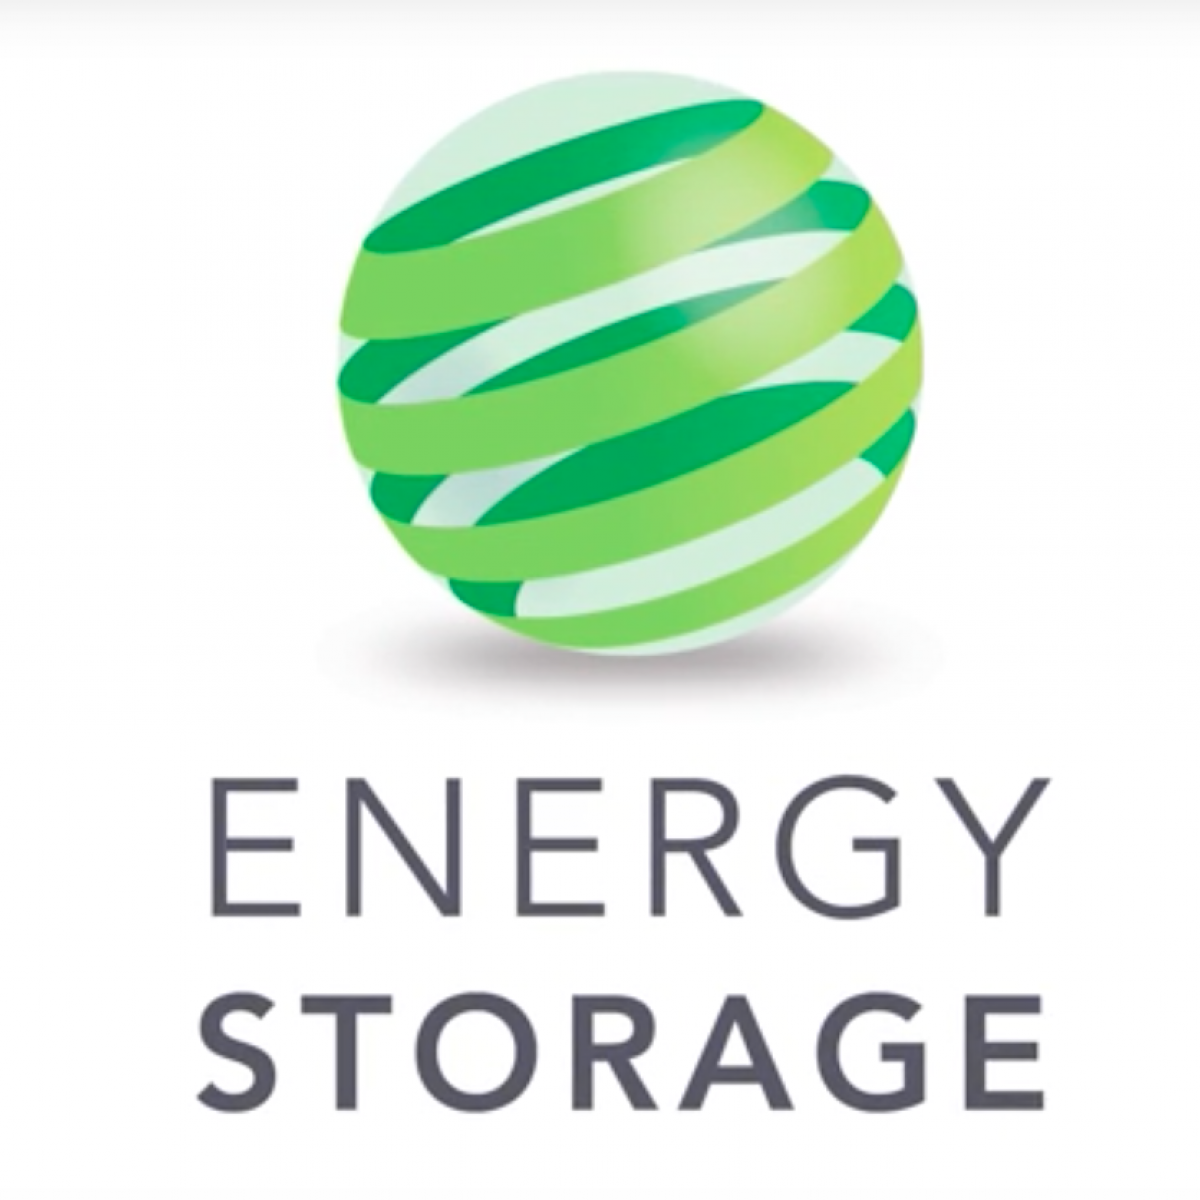 Ensuring battery storage systems are sold responsibly